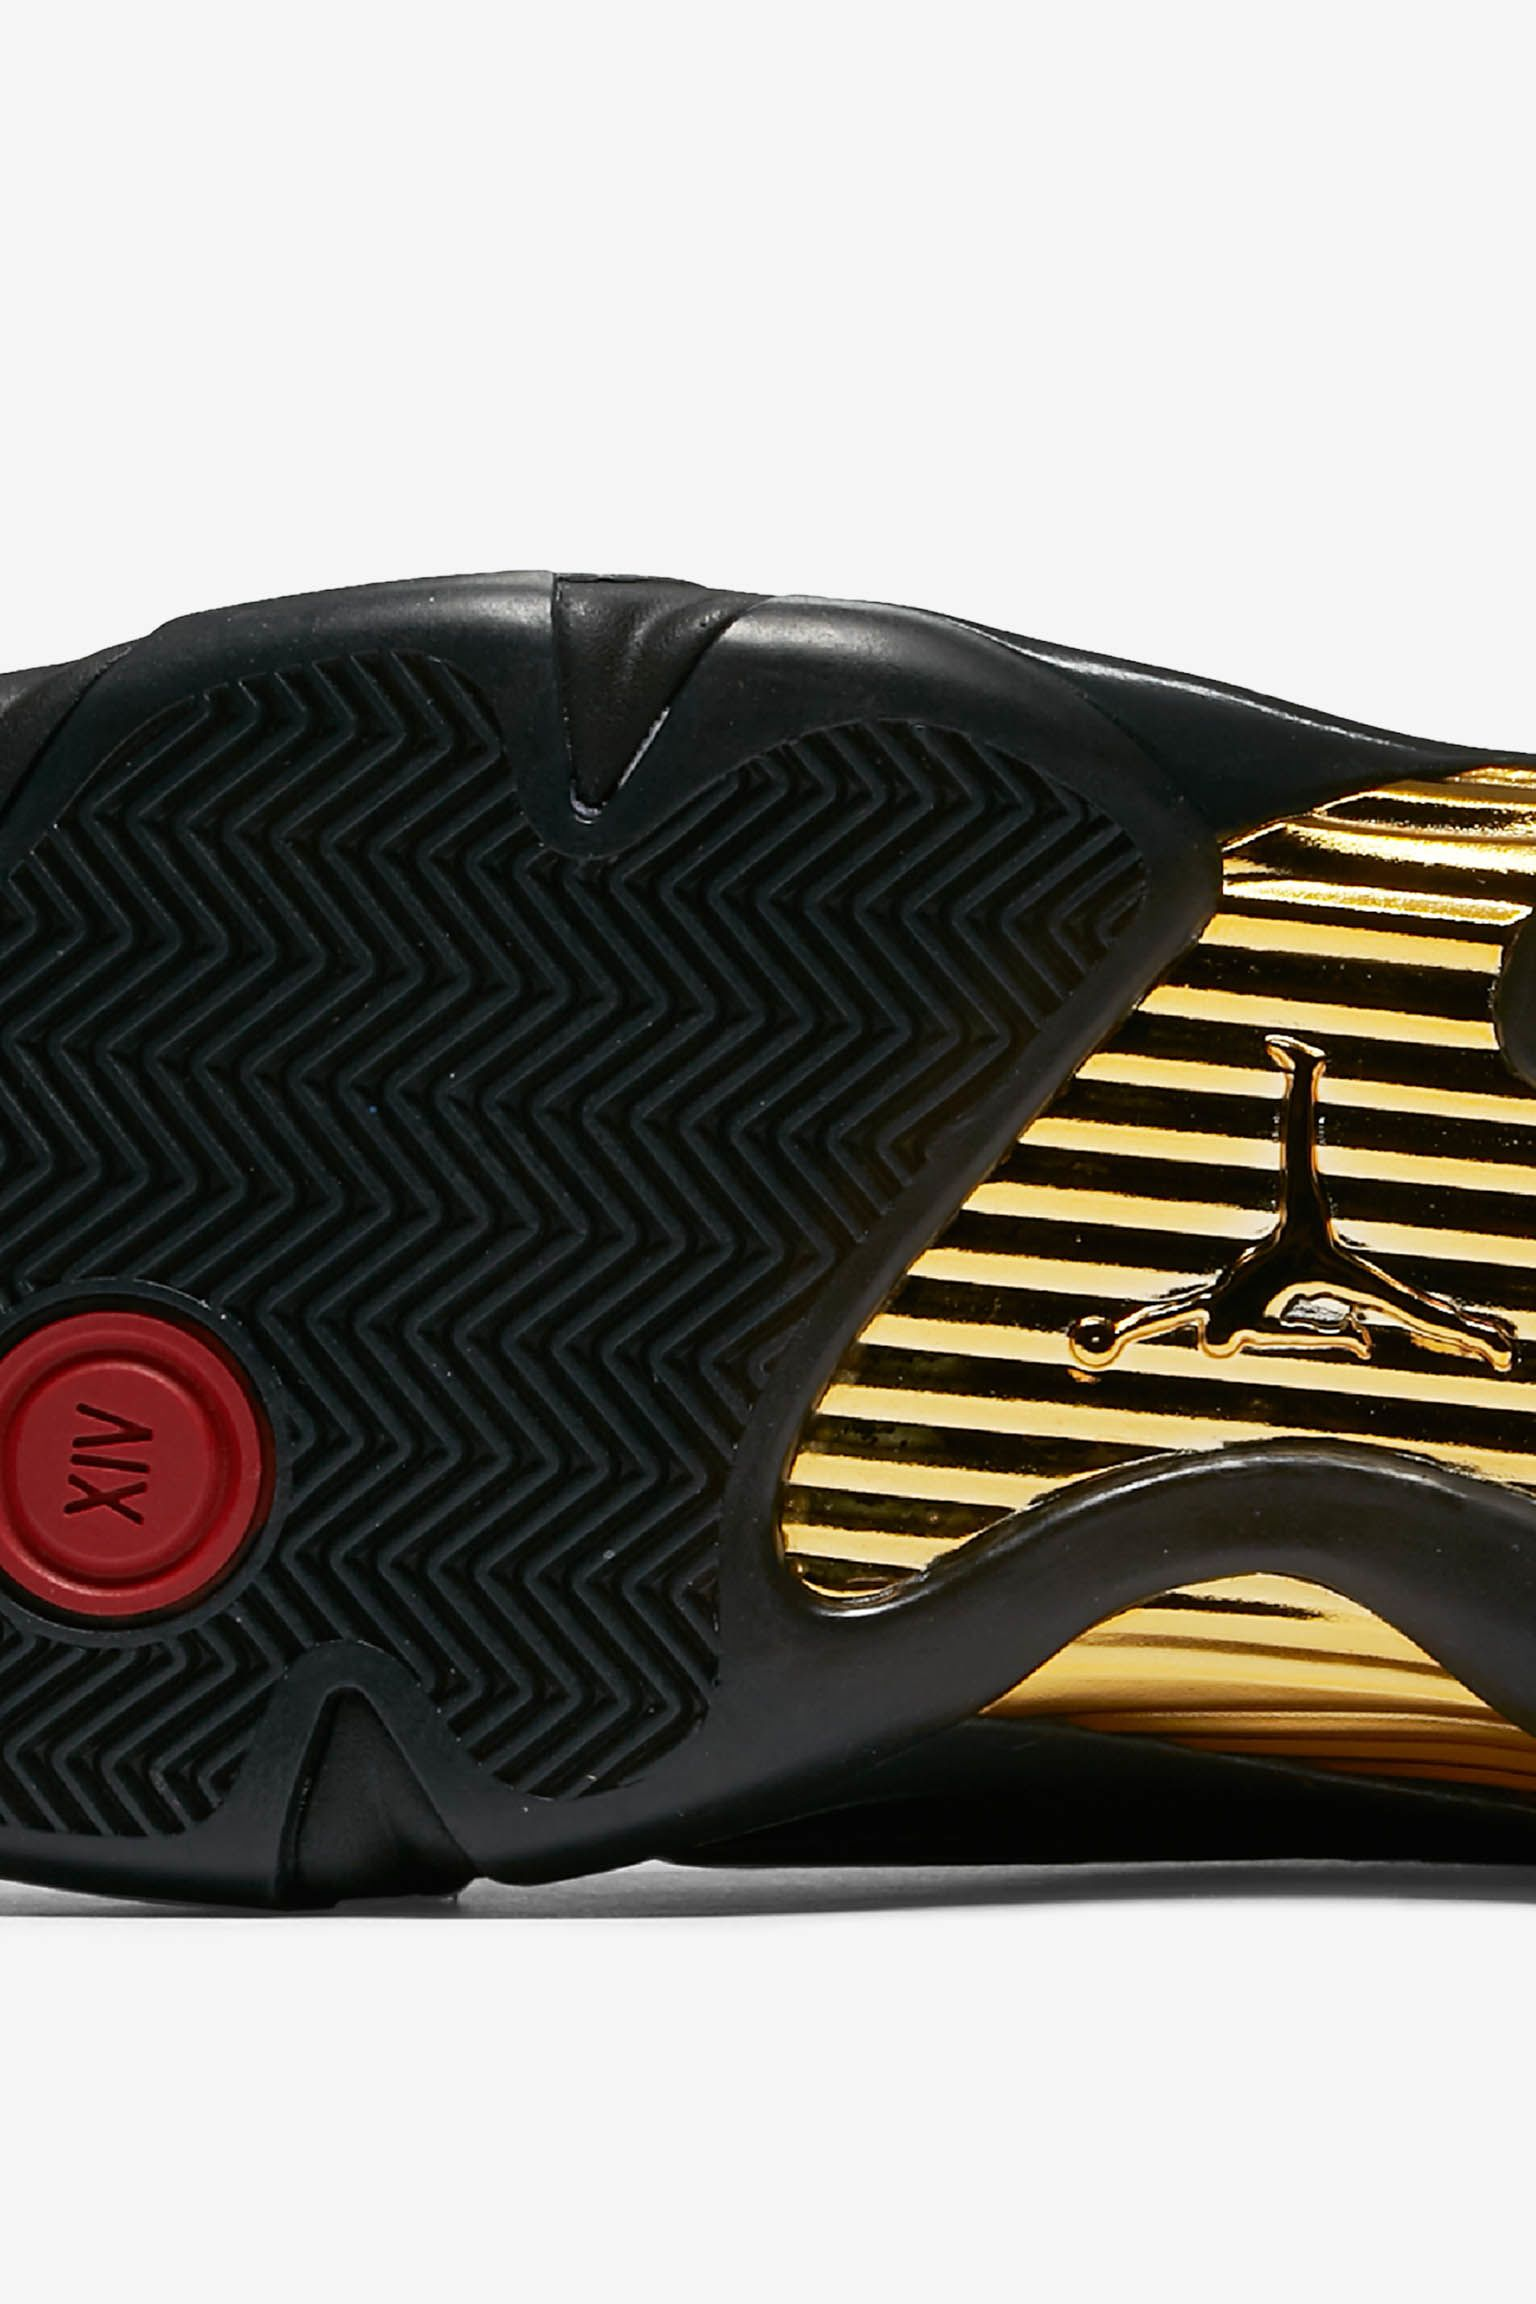 Air Jordan 13/14 DMP 'Finals Pack' Release Date